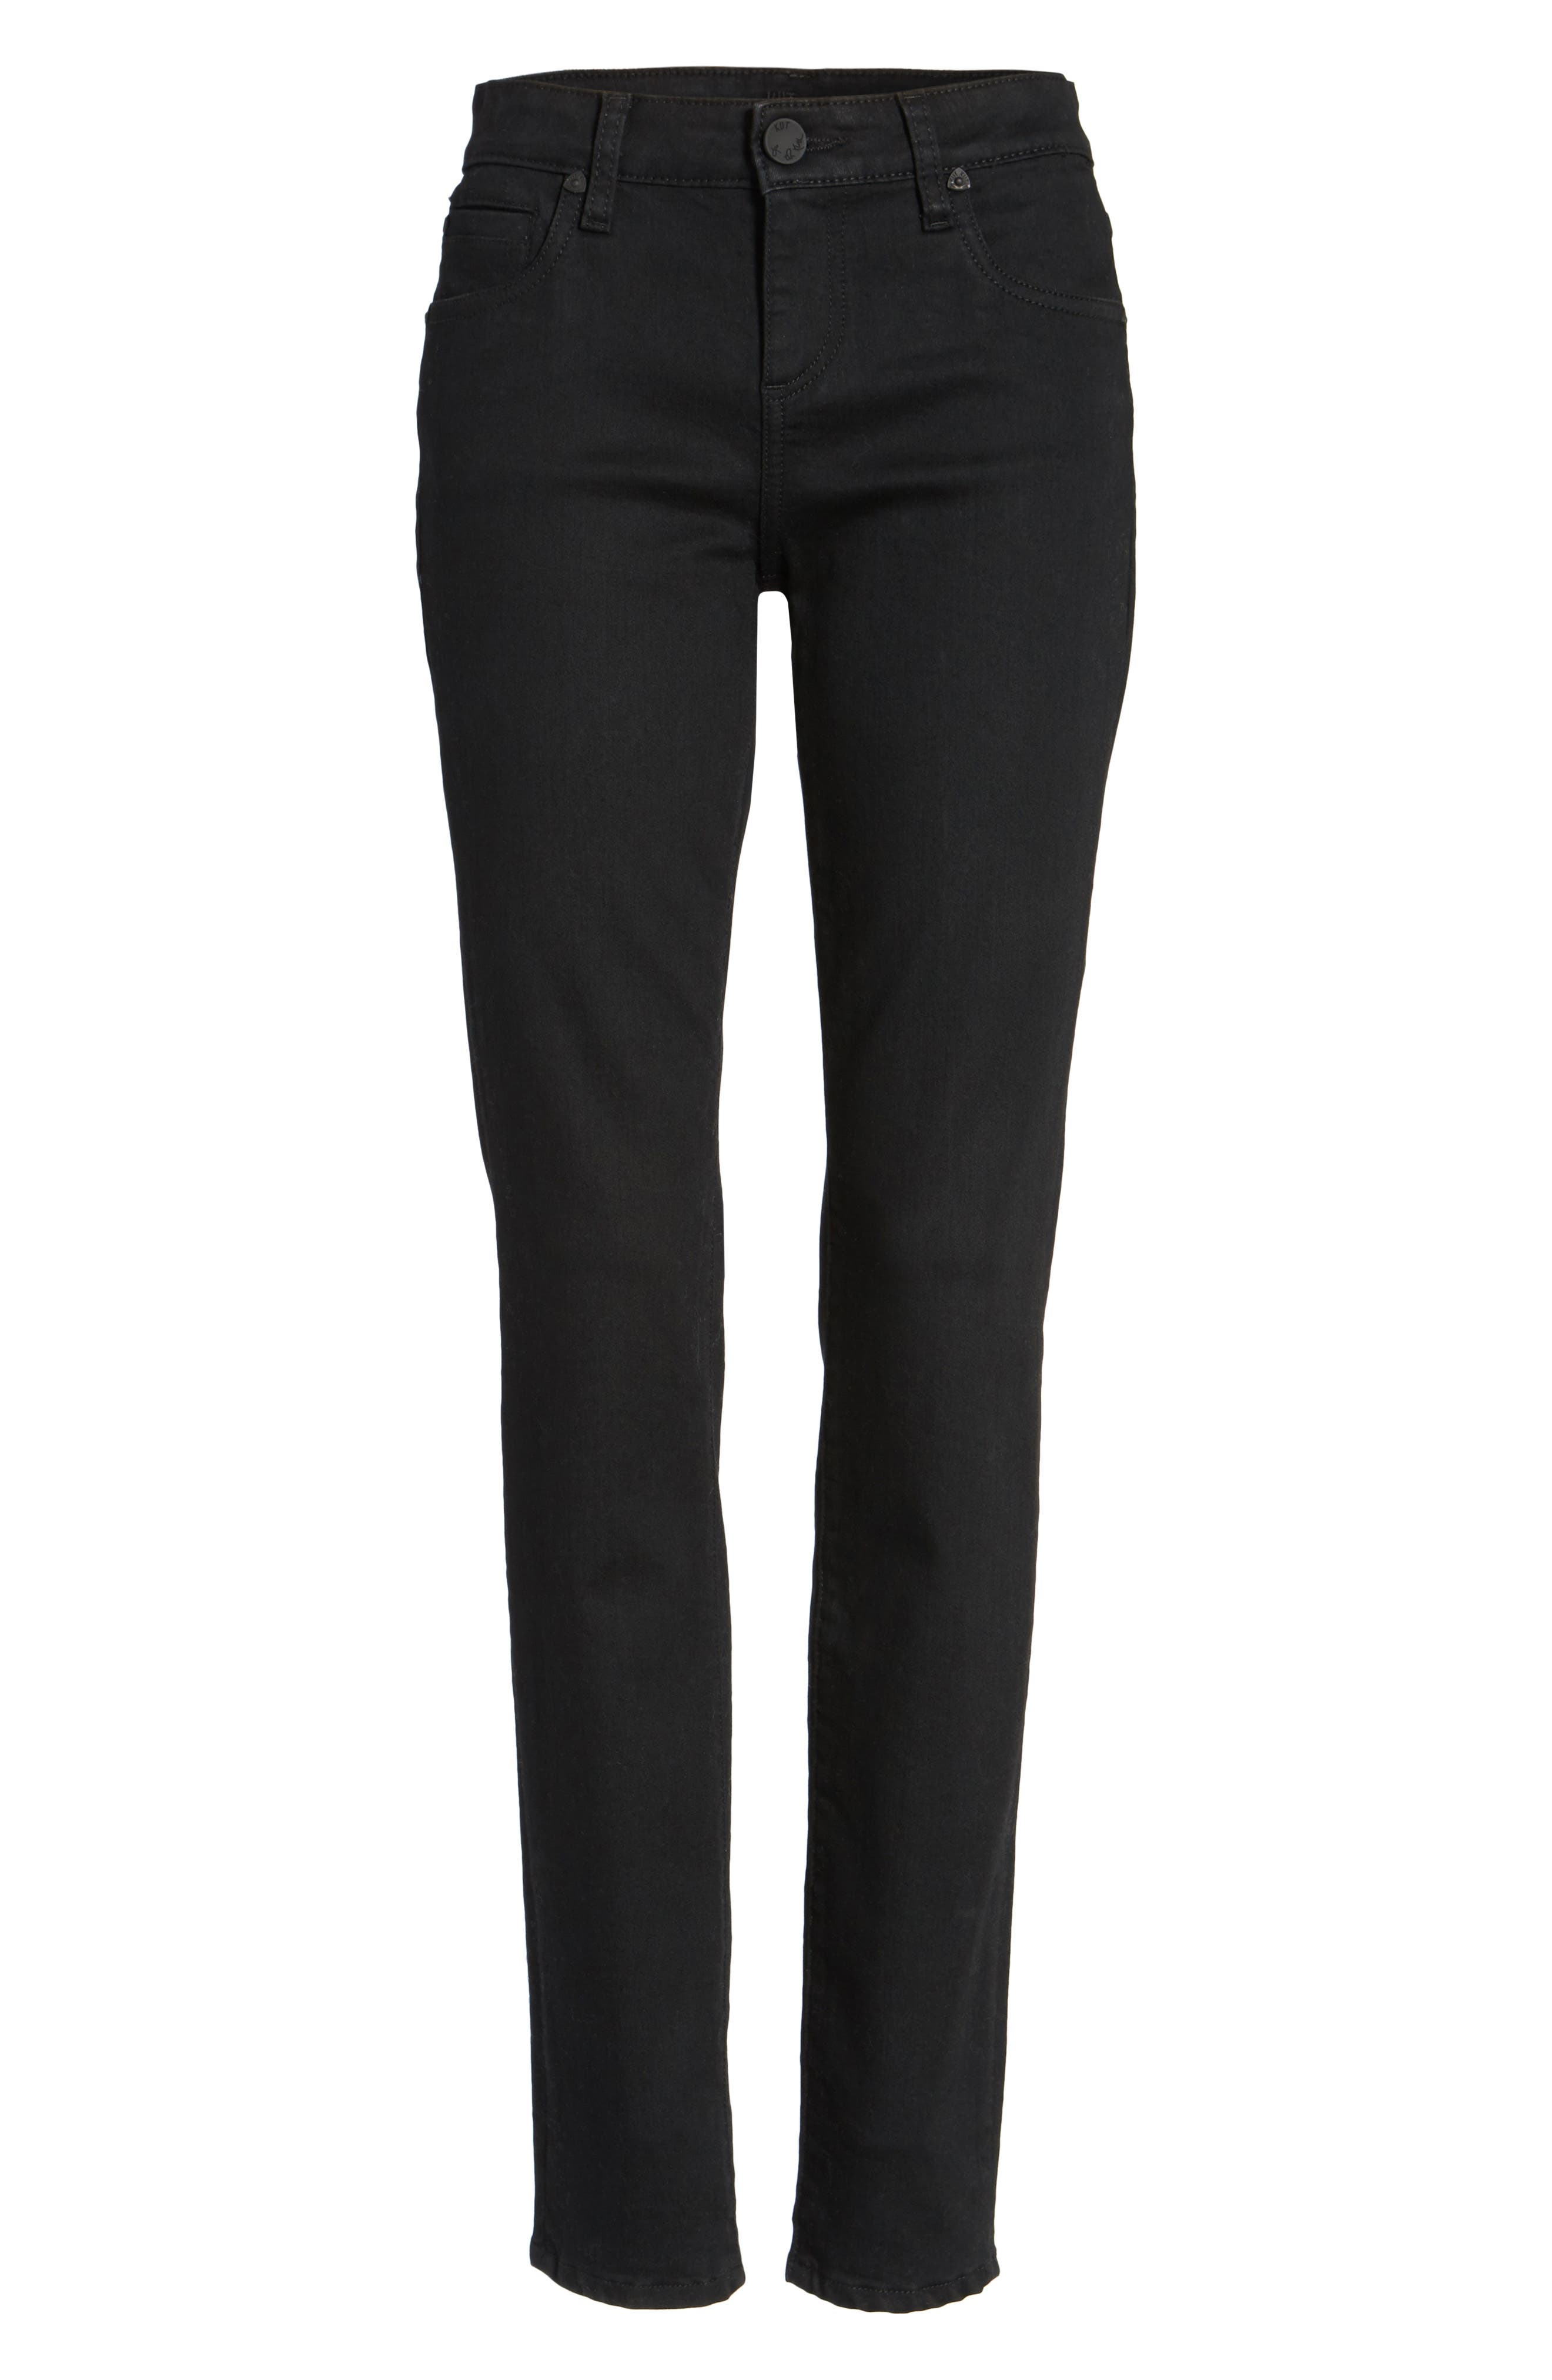 Diana Stretch Skinny Jeans,                             Alternate thumbnail 7, color,                             002